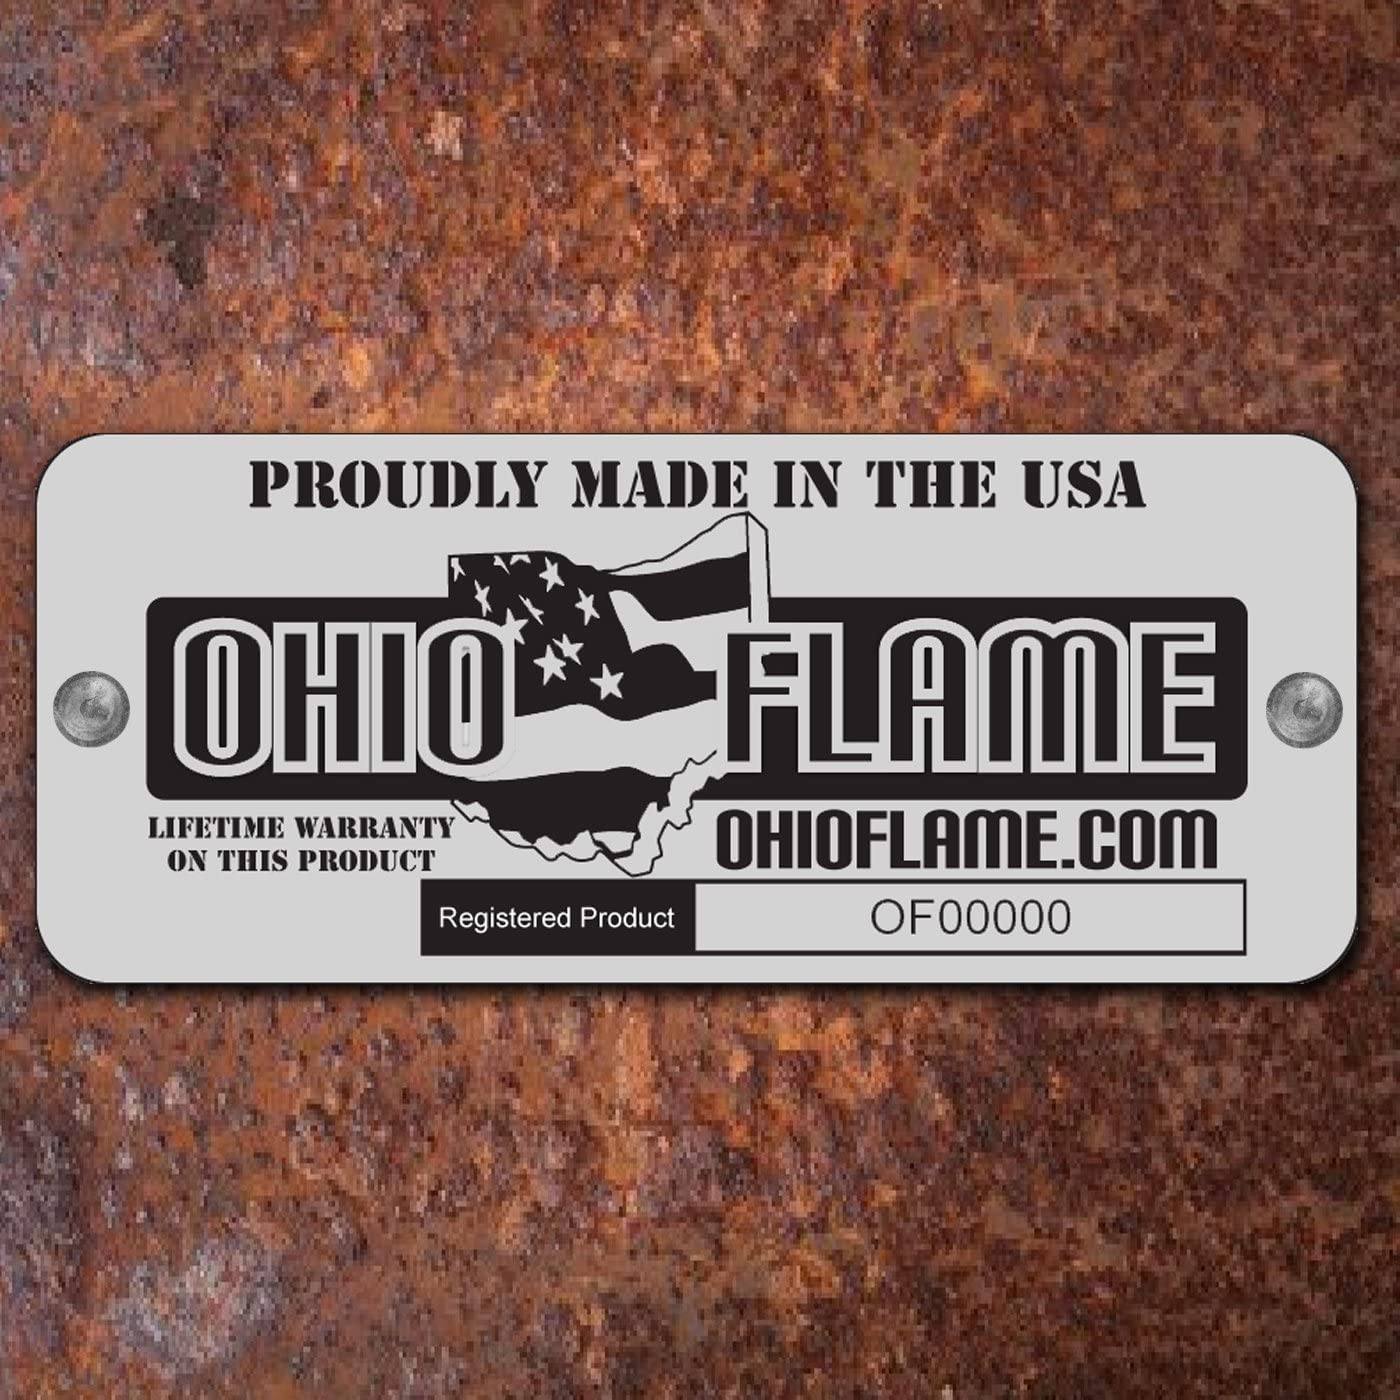 Ohio Flame 36 Patriot Fire Pit Made in USA – Natural Steel Finish